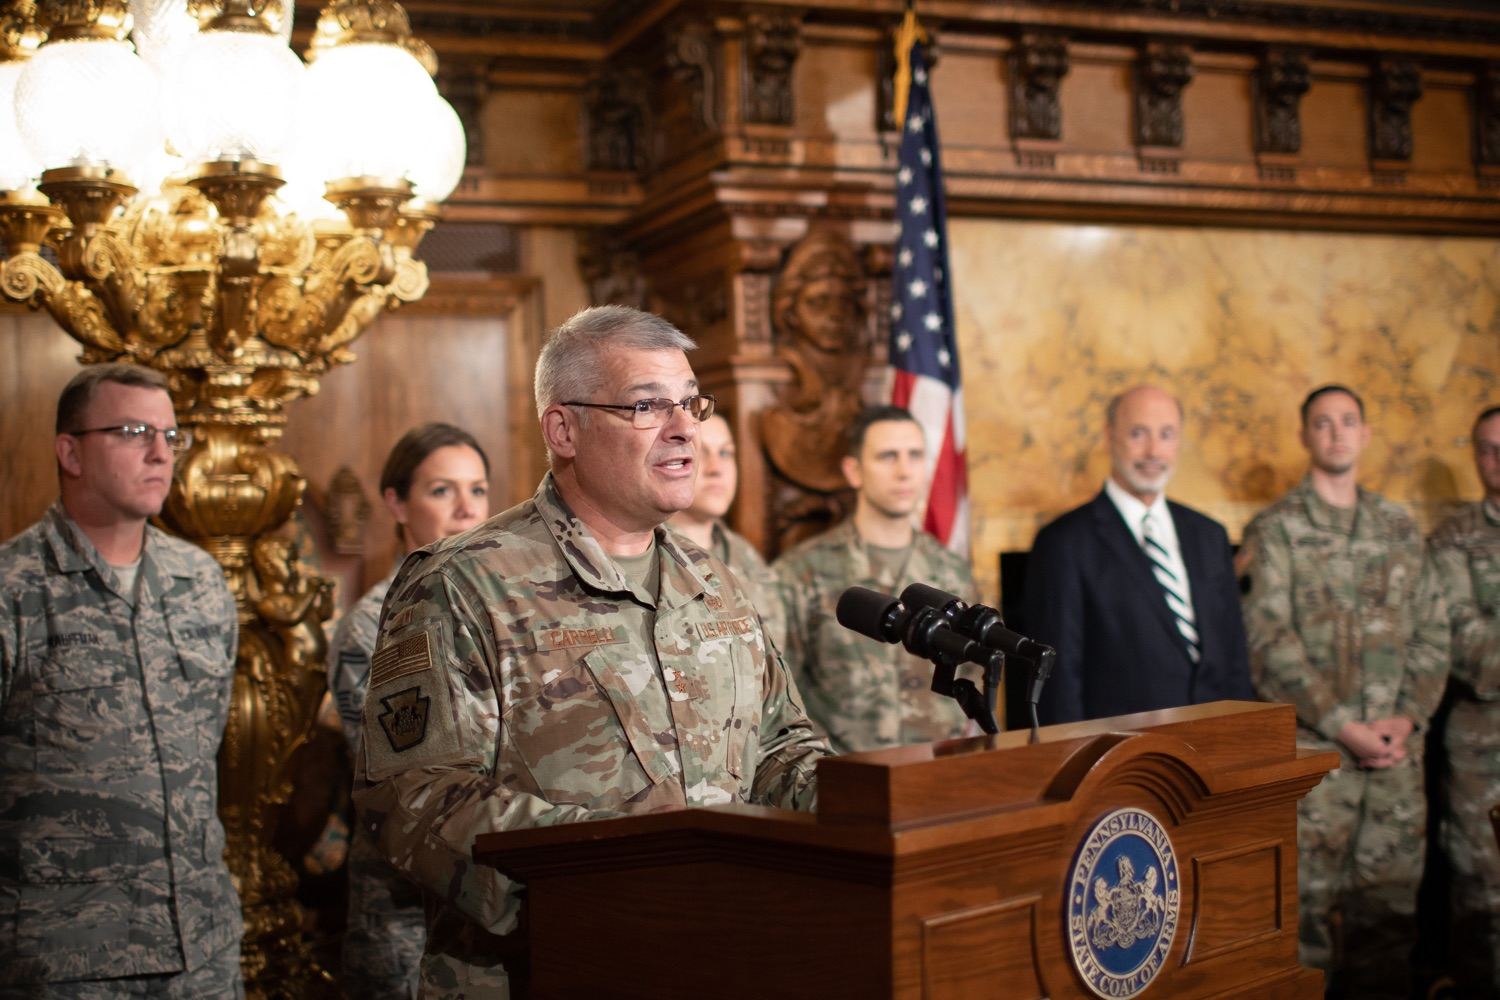 """<a href=""""http://filesource.abacast.com/commonwealthofpa/photo/17563_gov_giBill_dz_012.jpg"""" target=""""_blank"""">⇣Download Photo<br></a>Maj. Gen. Anthony Carelli speaking at the announcement.Governor Tom Wolf, joined by Pennsylvanias adjutant general and head of the Department of Military and Veterans Affairs Maj. Gen. Anthony Carelli, legislators and PA National Guard members and their families, encouraged PA National Guard members to take advantage of the new Military Family Education Program, or PA GI bill, now open for enrollment. Harrisburg, PA Monday, November 4 2019"""